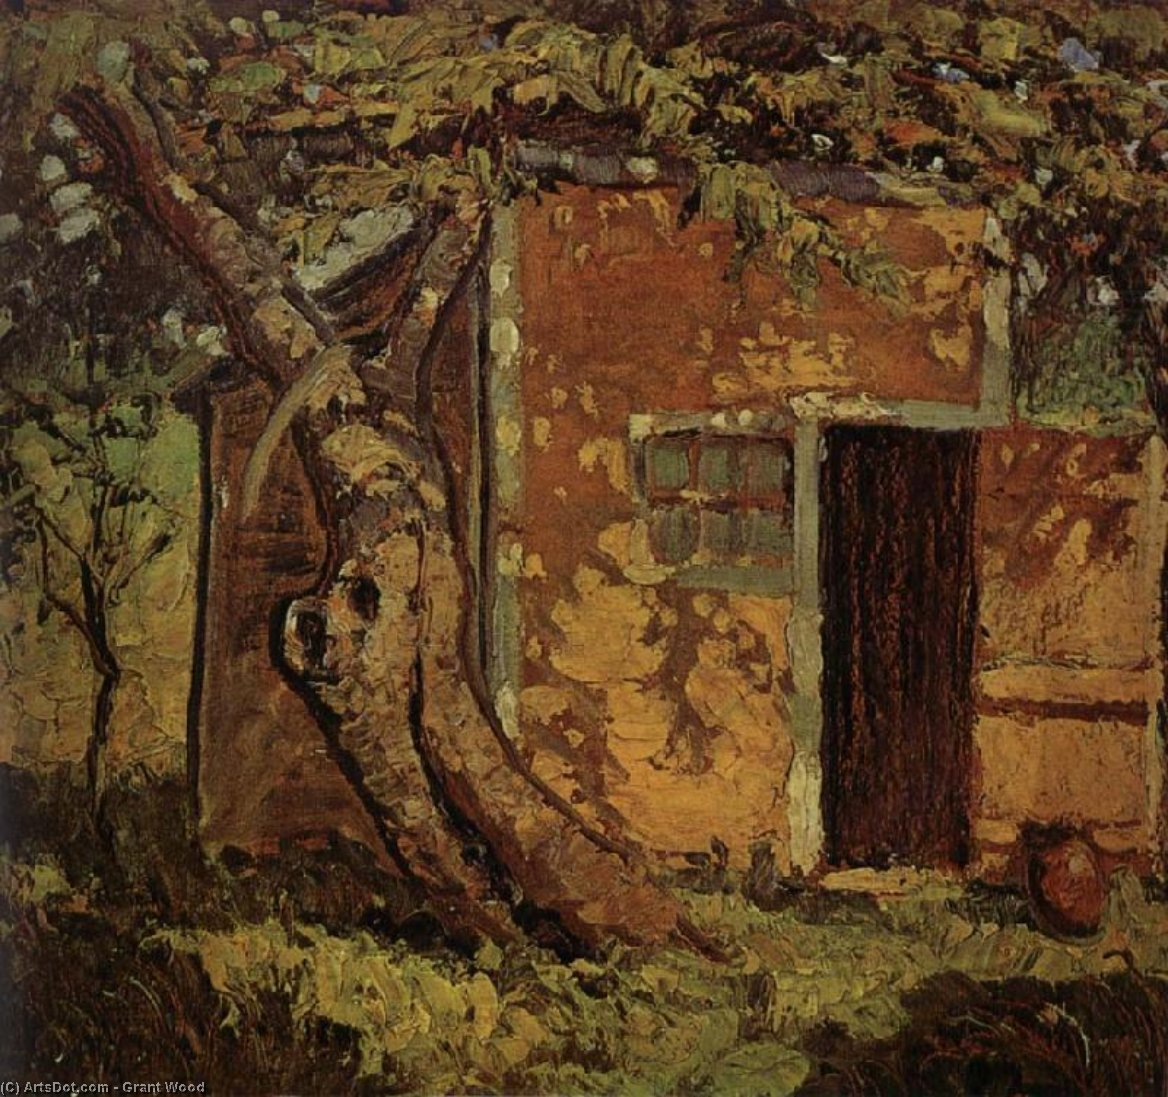 Wikioo.org - The Encyclopedia of Fine Arts - Painting, Artwork by Grant Wood - The Tree